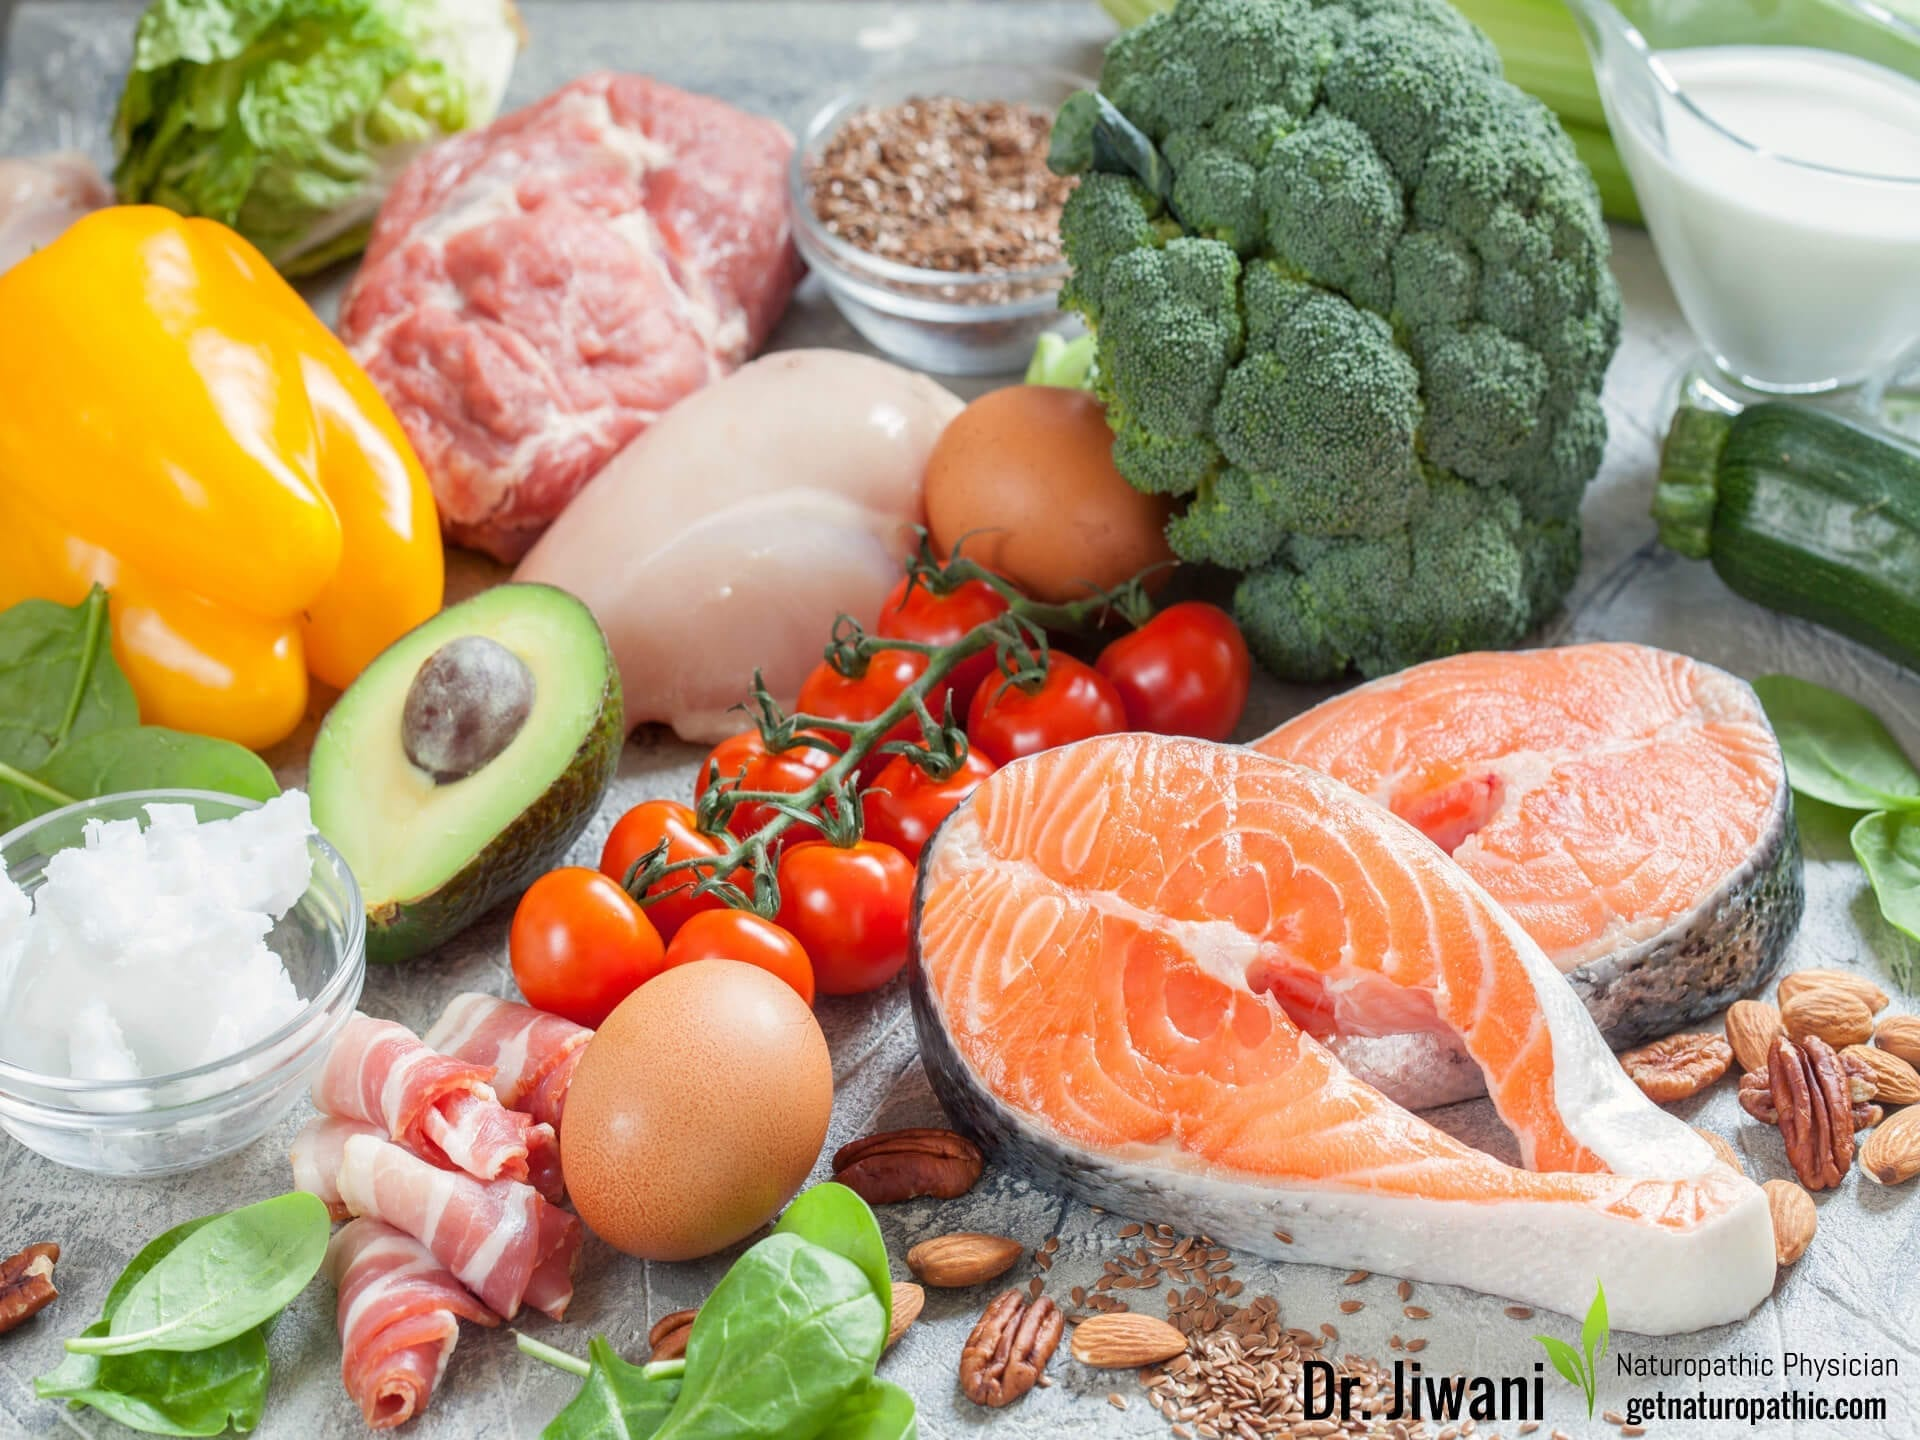 Keto Diet Food List for Food Allergies* | Dr. Jiwani's Naturopathic Nuggets Blog